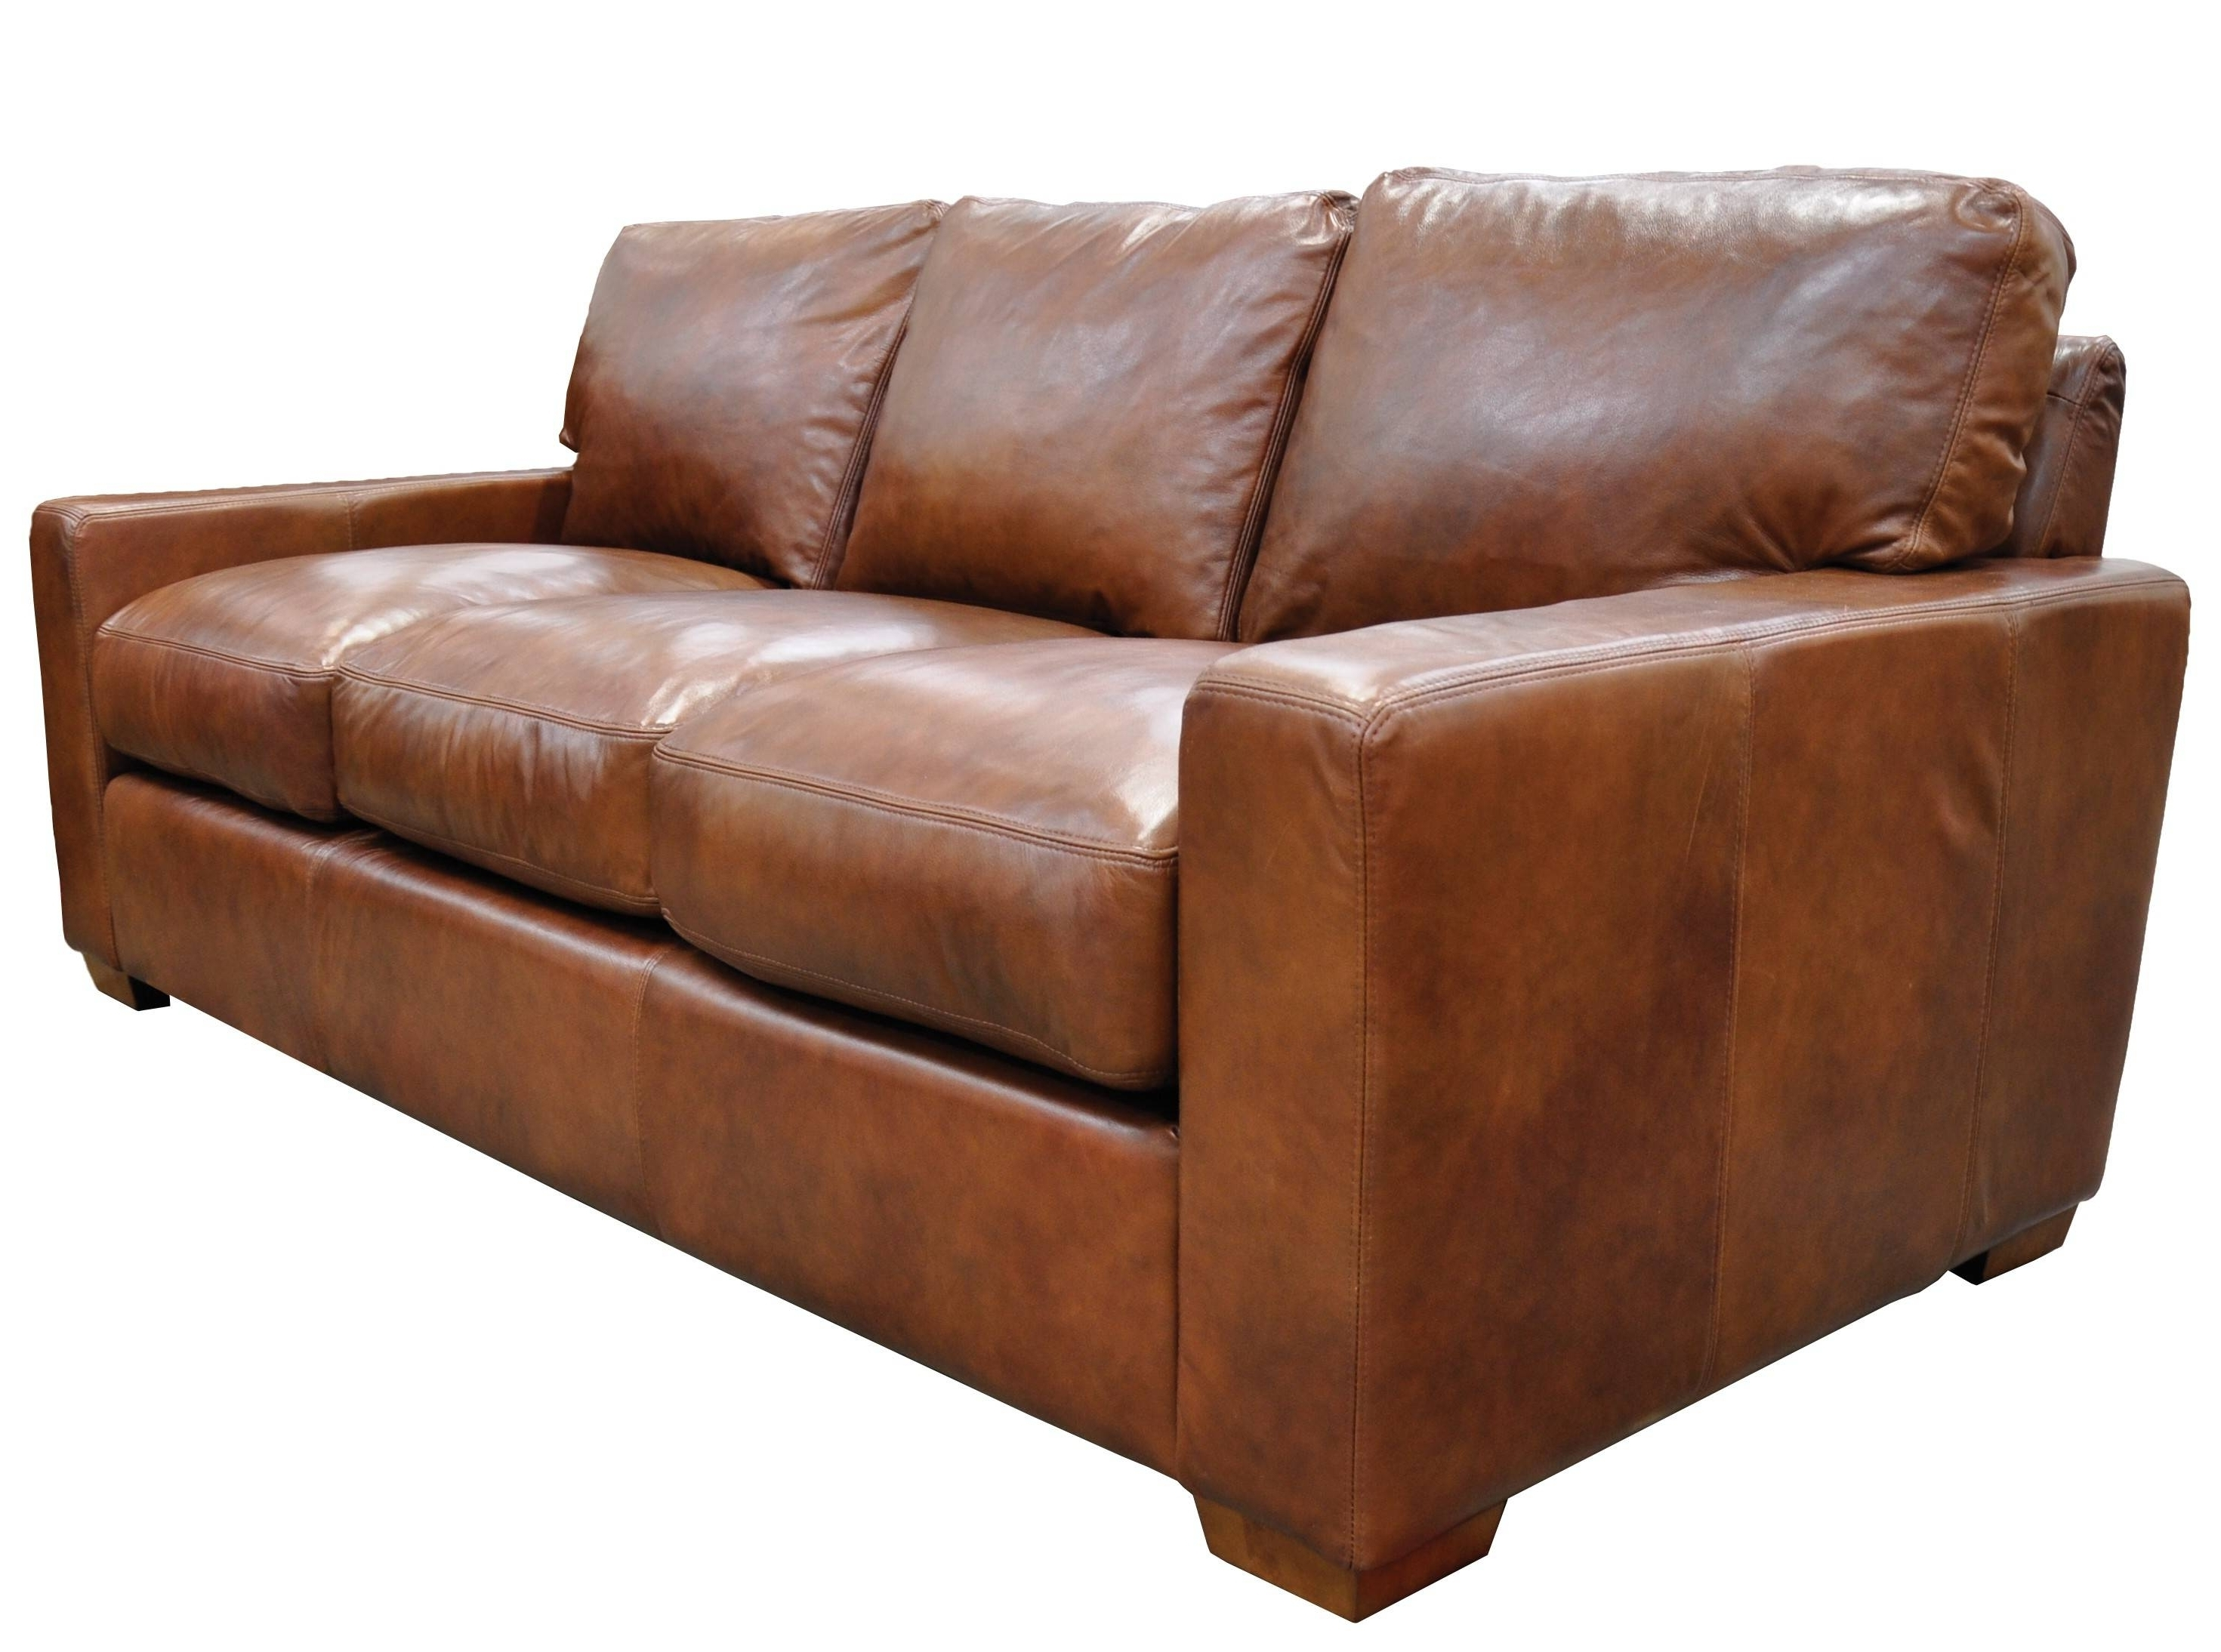 Aniline Leather Sofa Degreaser Dfs Conditioner Sofas Uk Inside Trendy Aniline Leather Sofas (View 3 of 20)